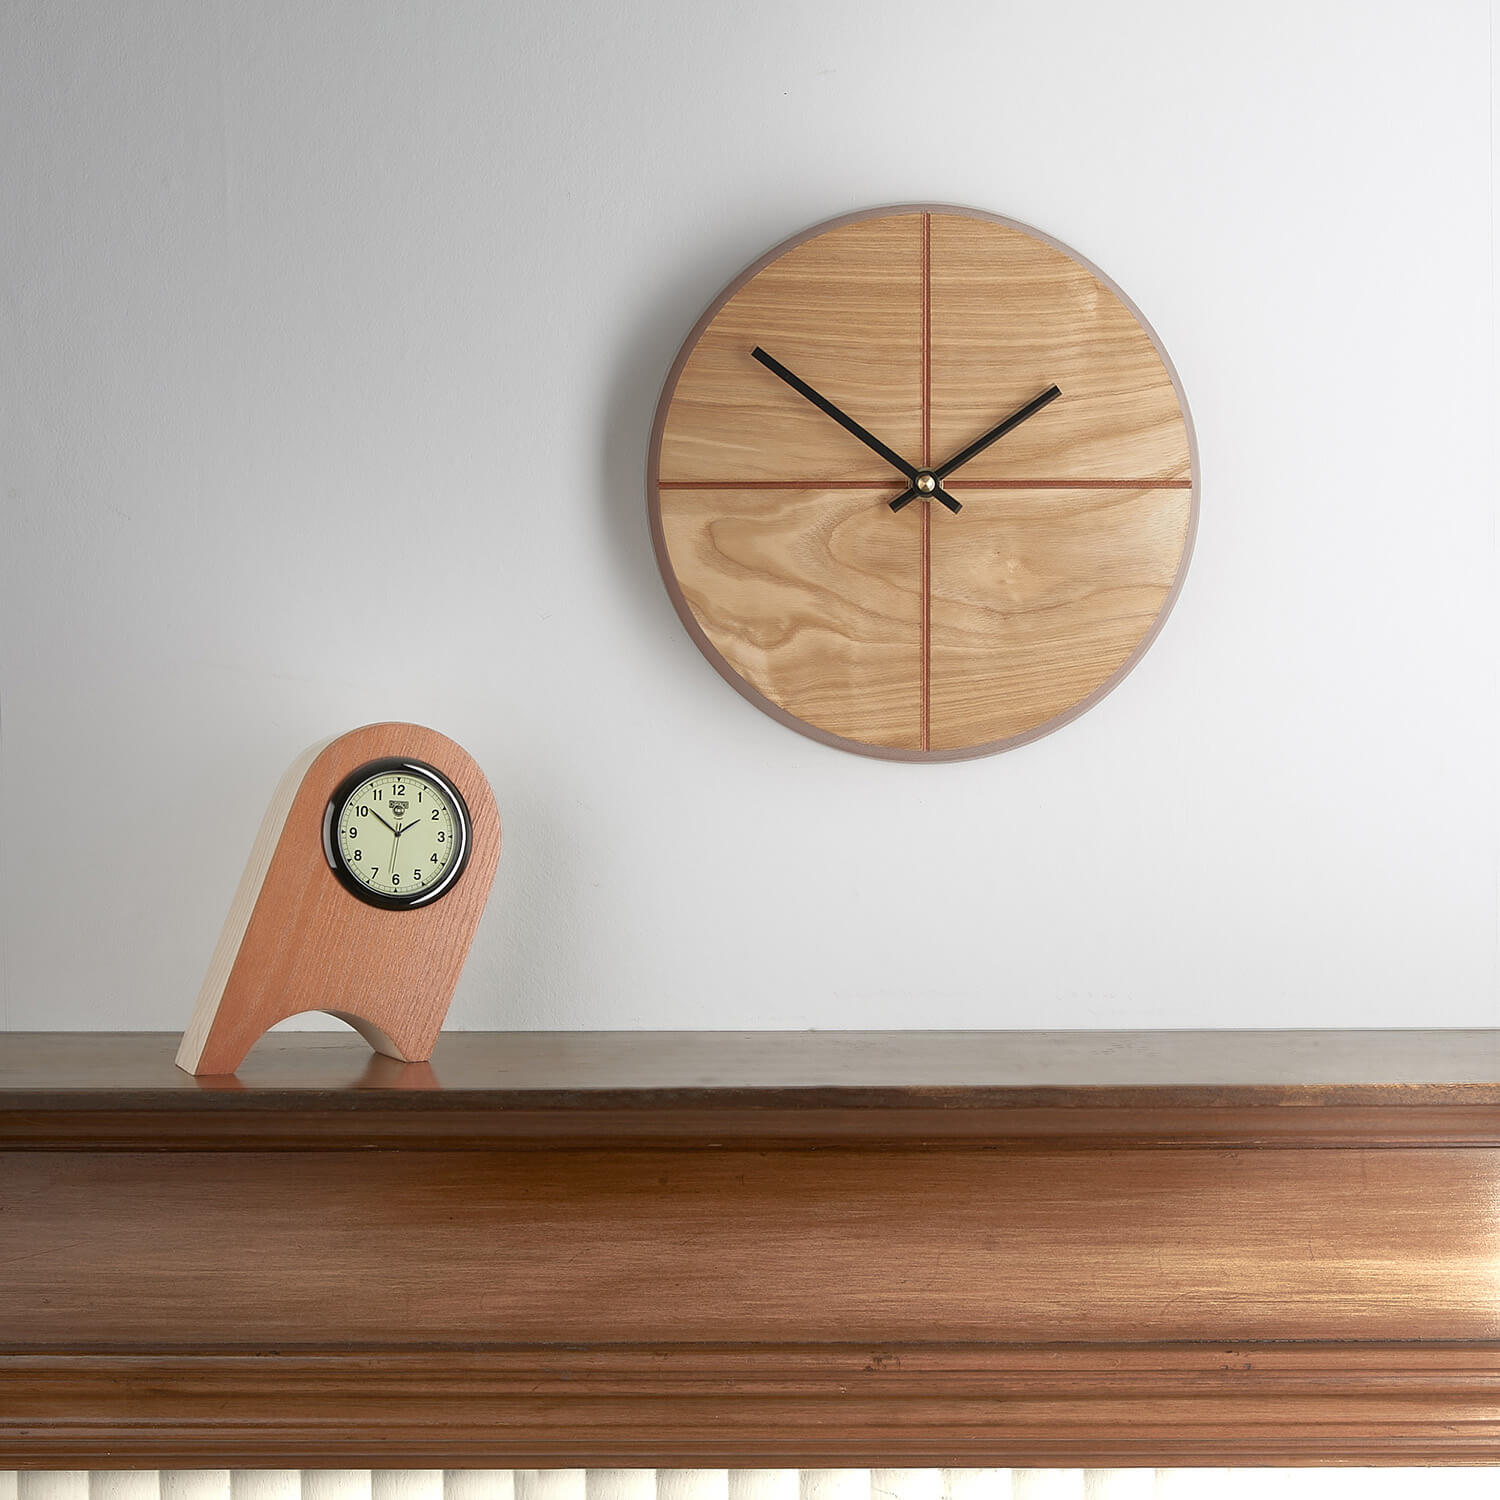 Simple contemporary photograph of clocks handmade by designer maker Humblewood